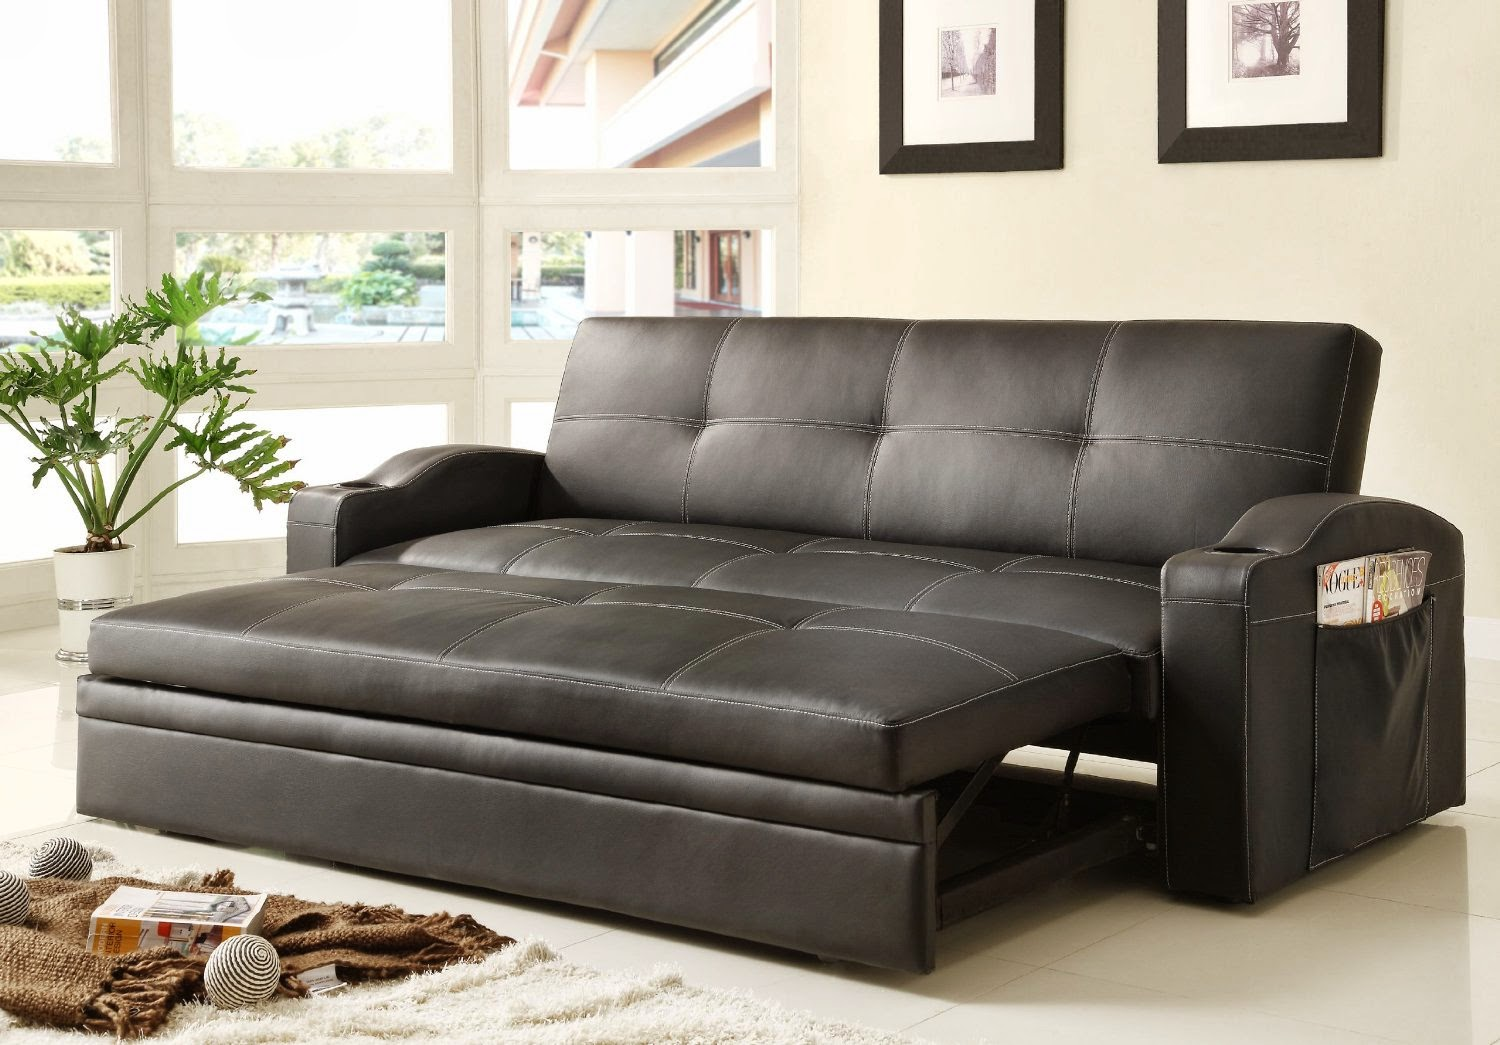 Best Homelegance 4803BLK Sofa Bed Review ConvertibleAdjustable